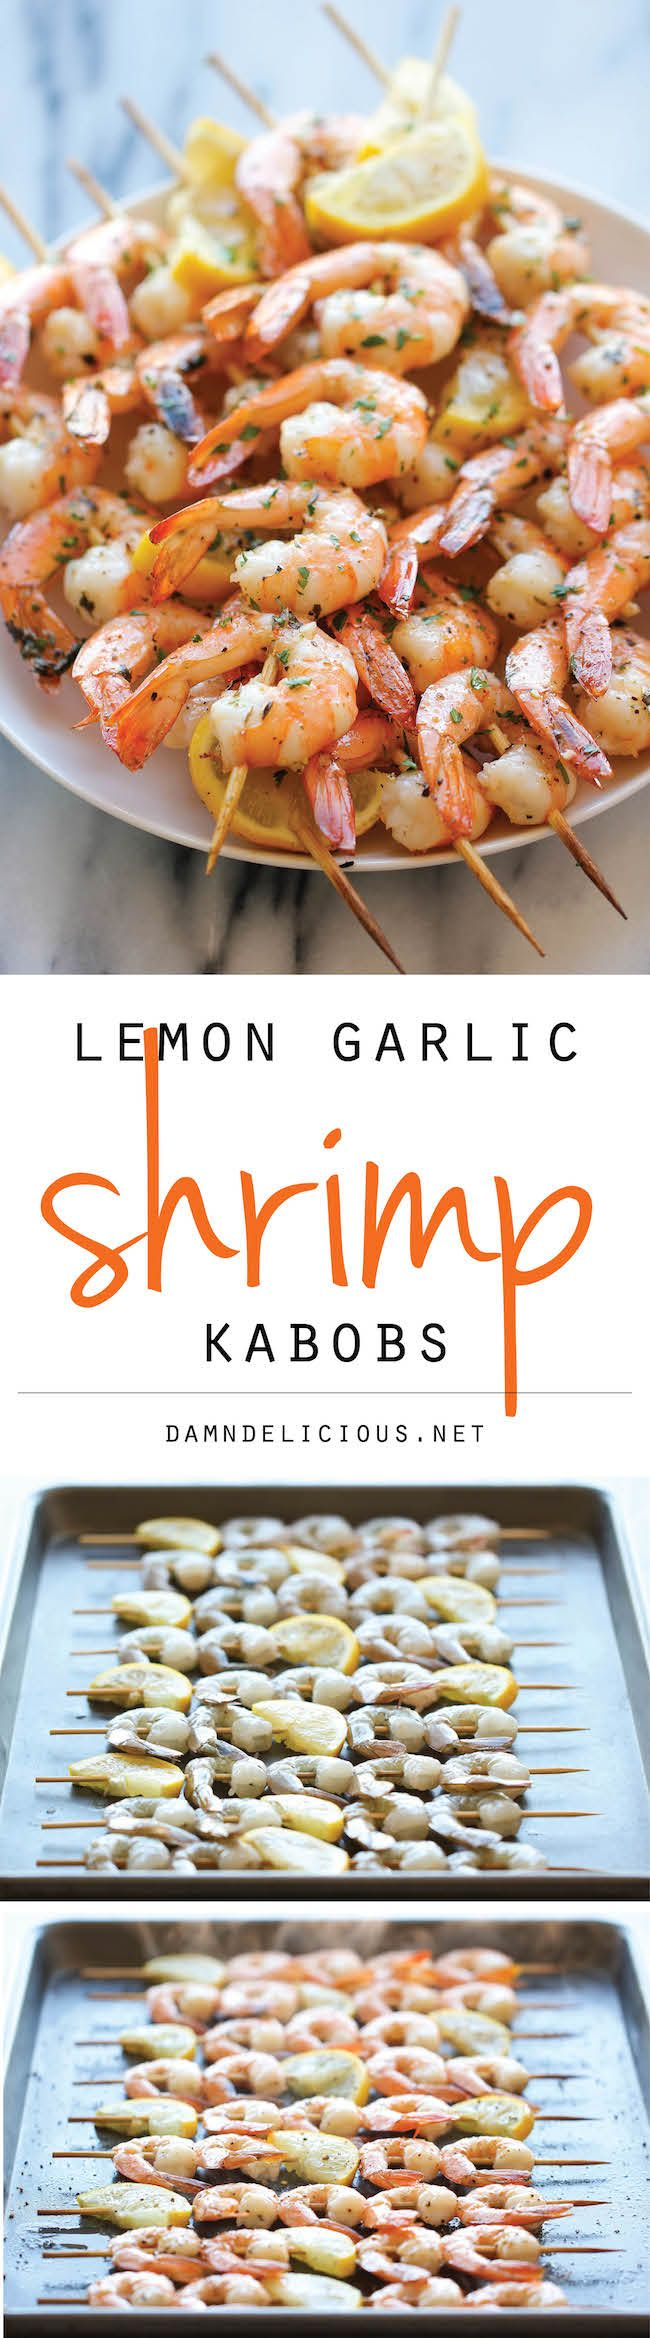 Lemon Garlic Shrimp Kabobs - medium shrimp - 5 lemons - kosher salt freshly ground black pepper - unsalted butter - 4 garlic cloves - dried oregano - dried basil - fresh parsley